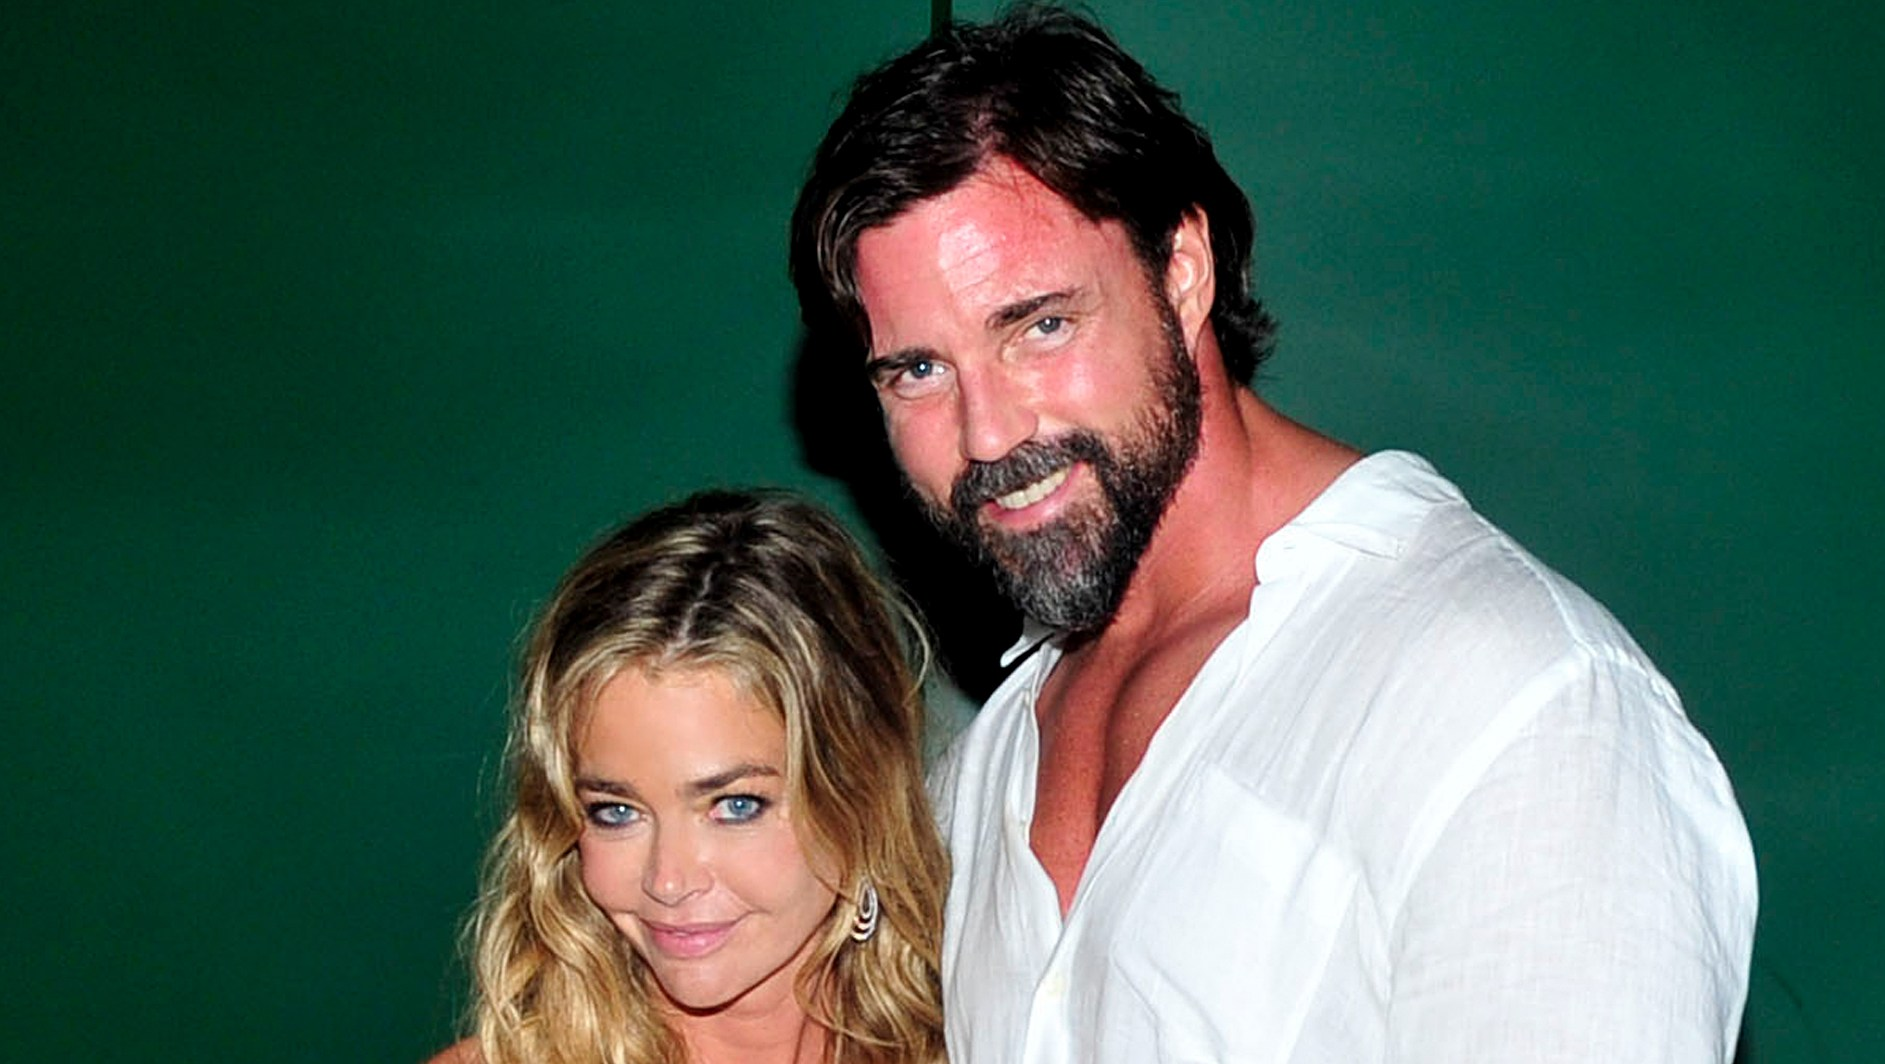 Denise Richards Quotes About Husband Aaron Phypers